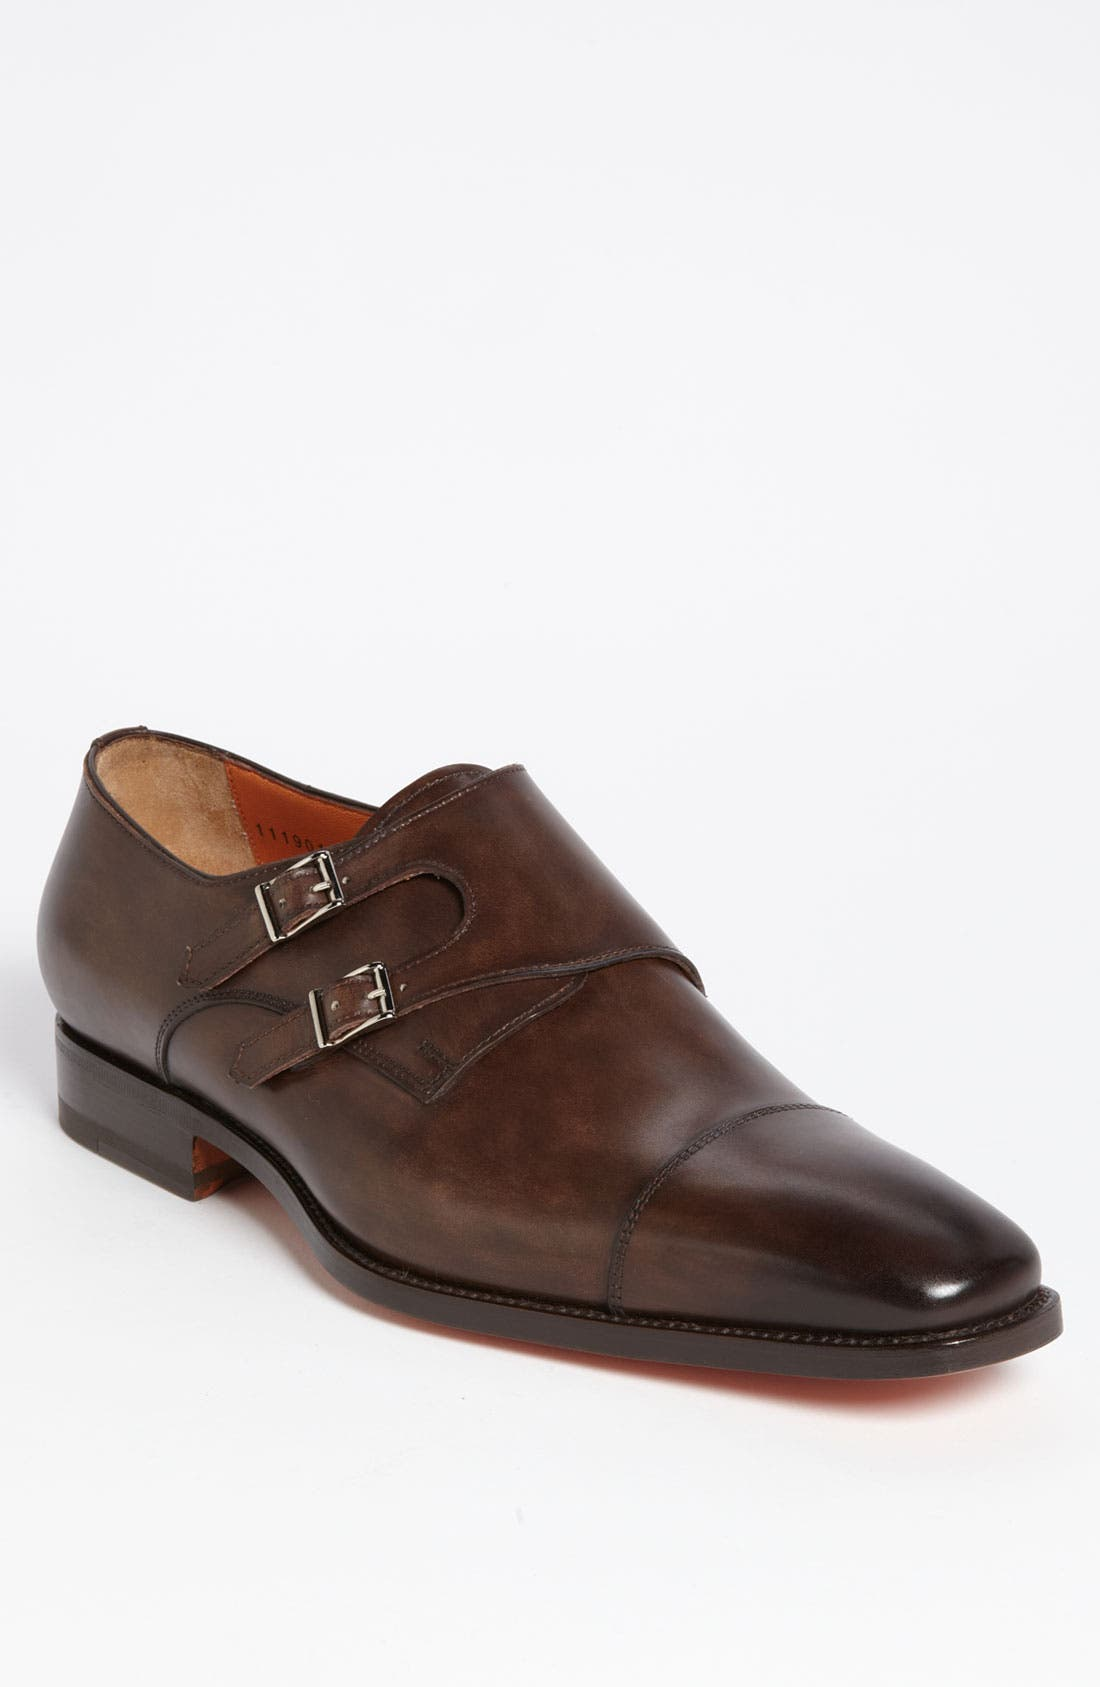 Alternate Image 1 Selected - Santoni 'Sumner' Double Monk Strap Slip-On